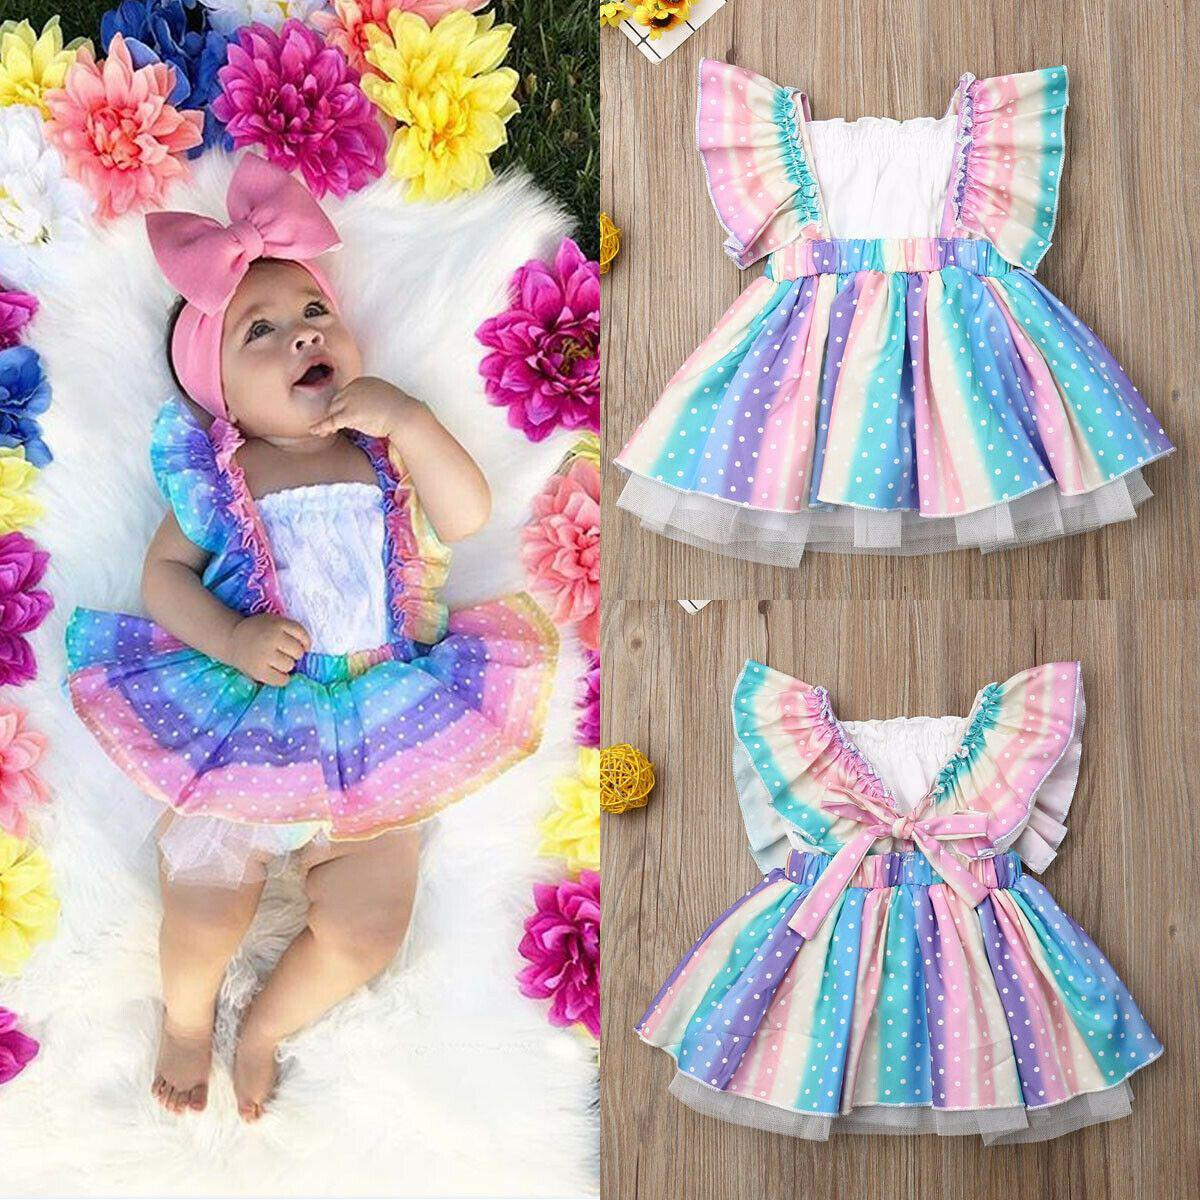 Girls' White Top + Rainbow Skirt Set